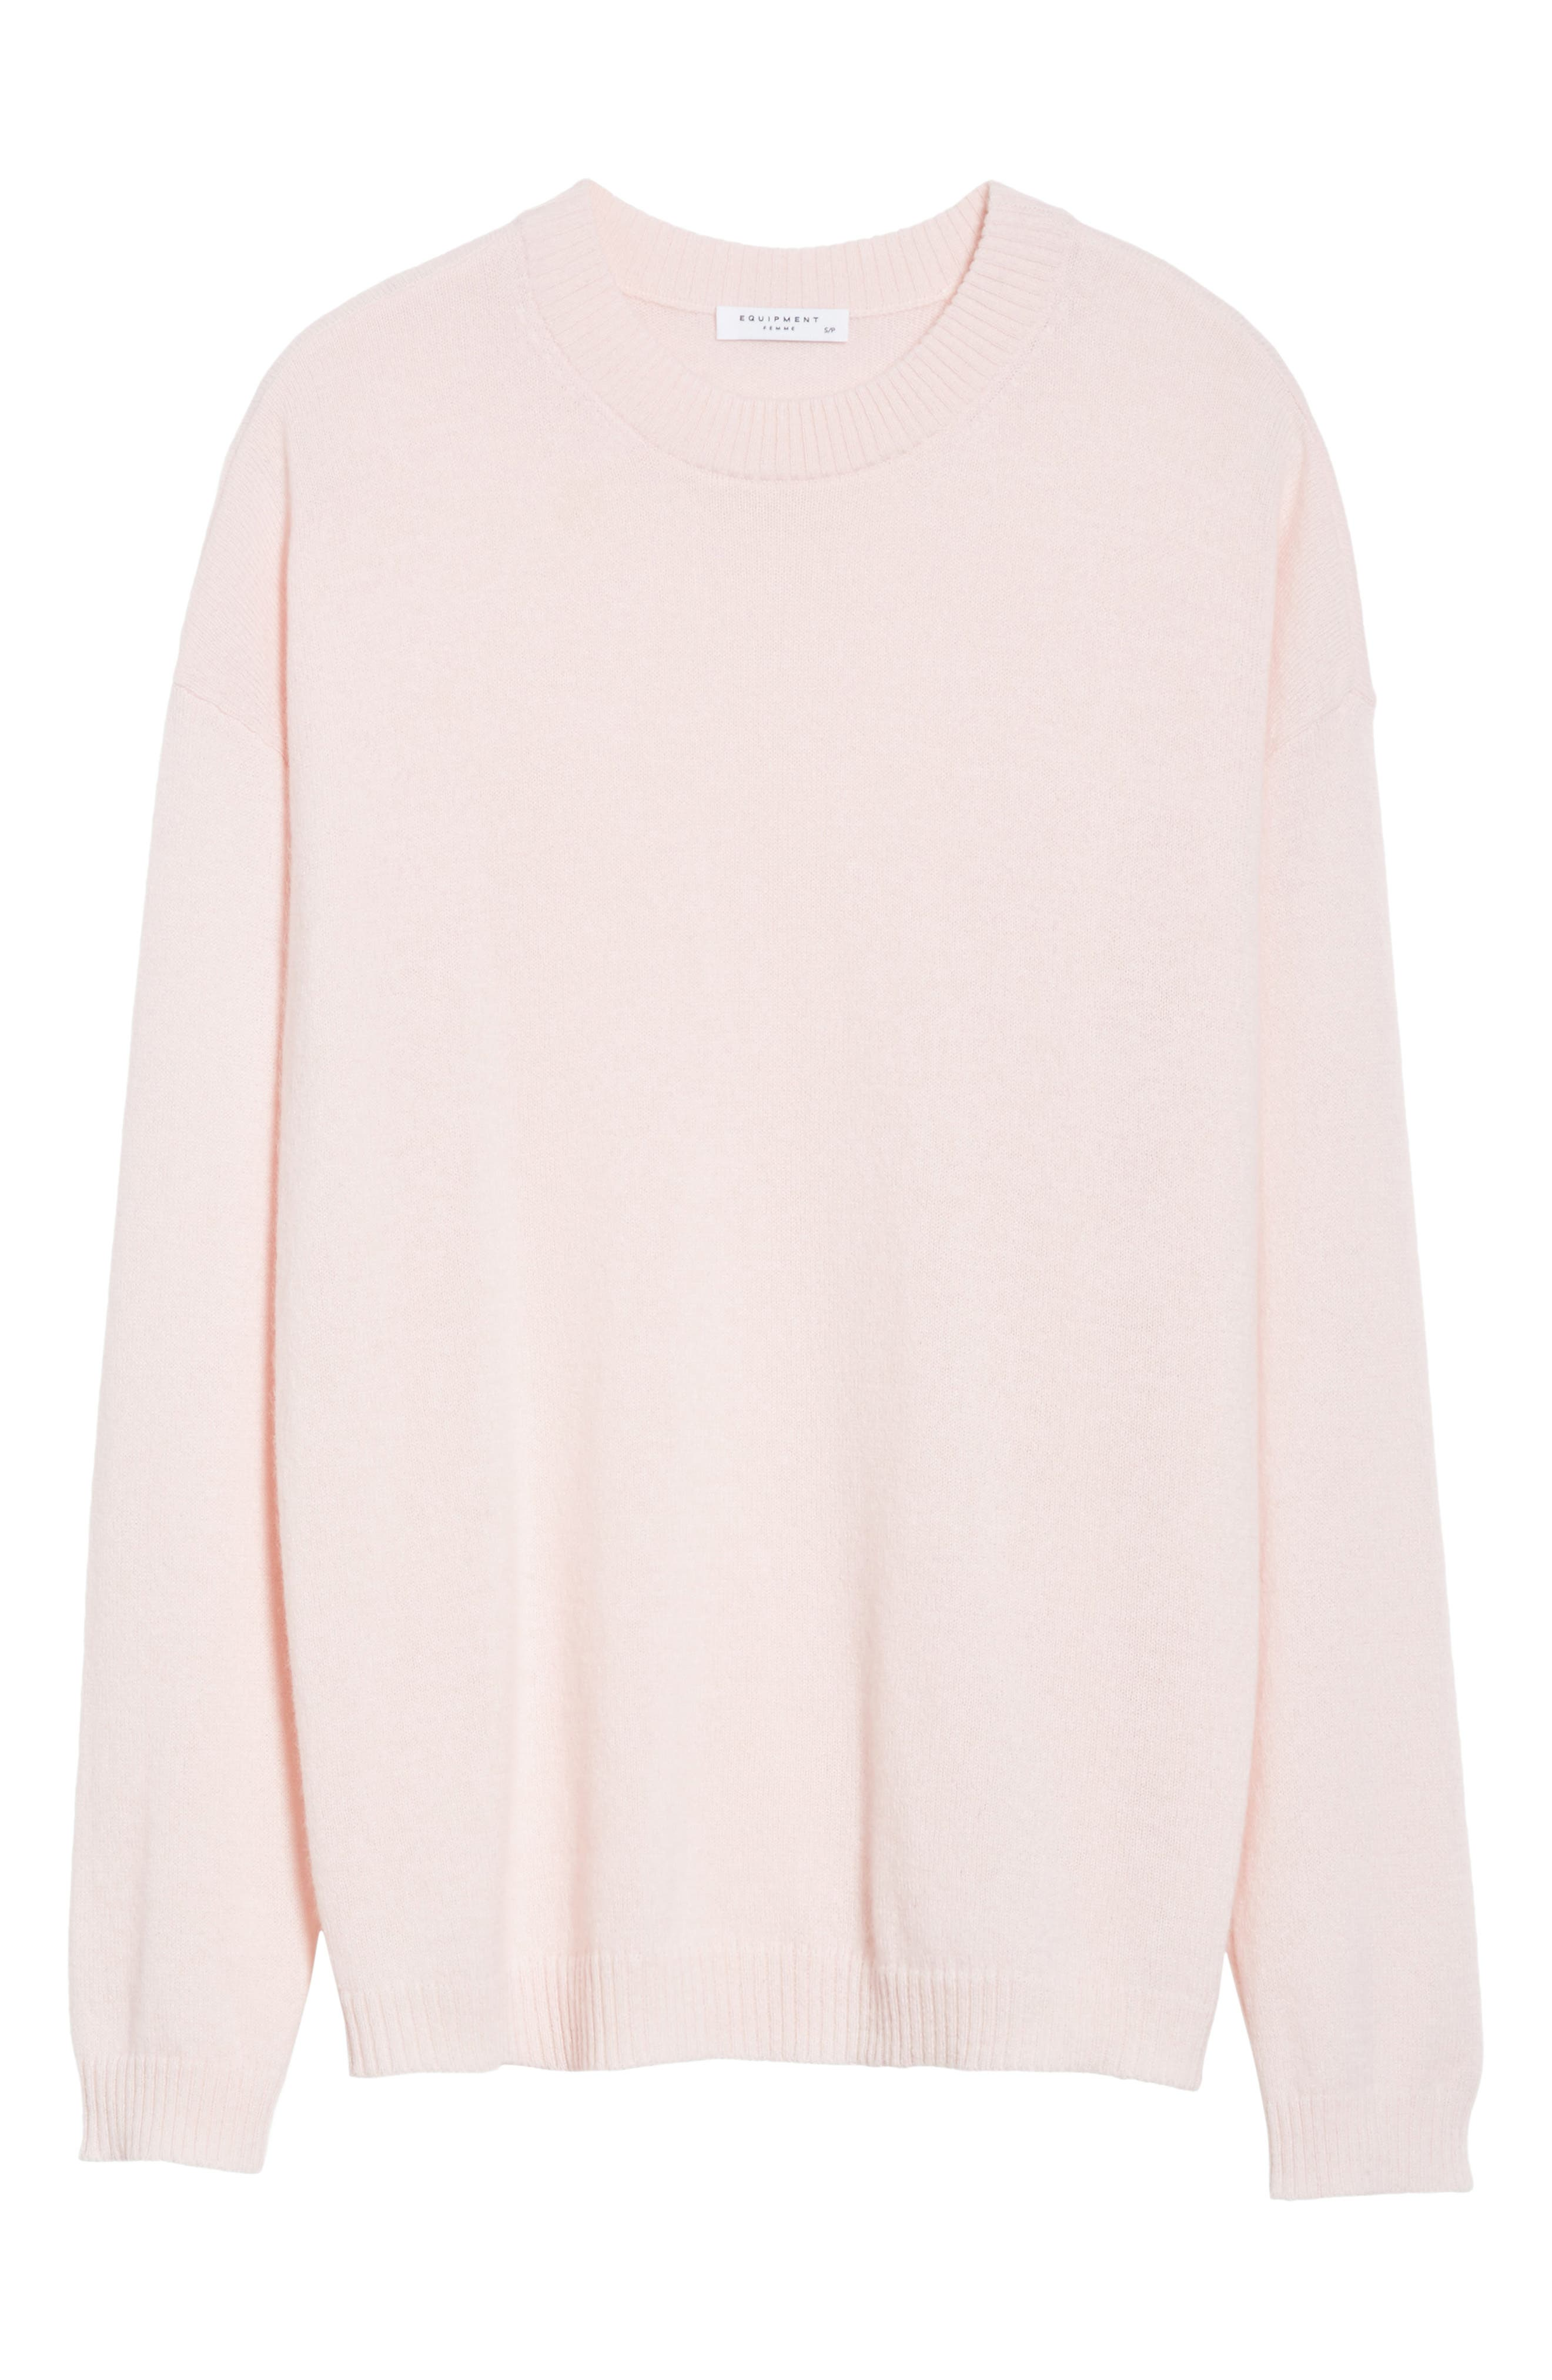 Bryce Oversize Cashmere Sweater,                             Alternate thumbnail 6, color,                             650